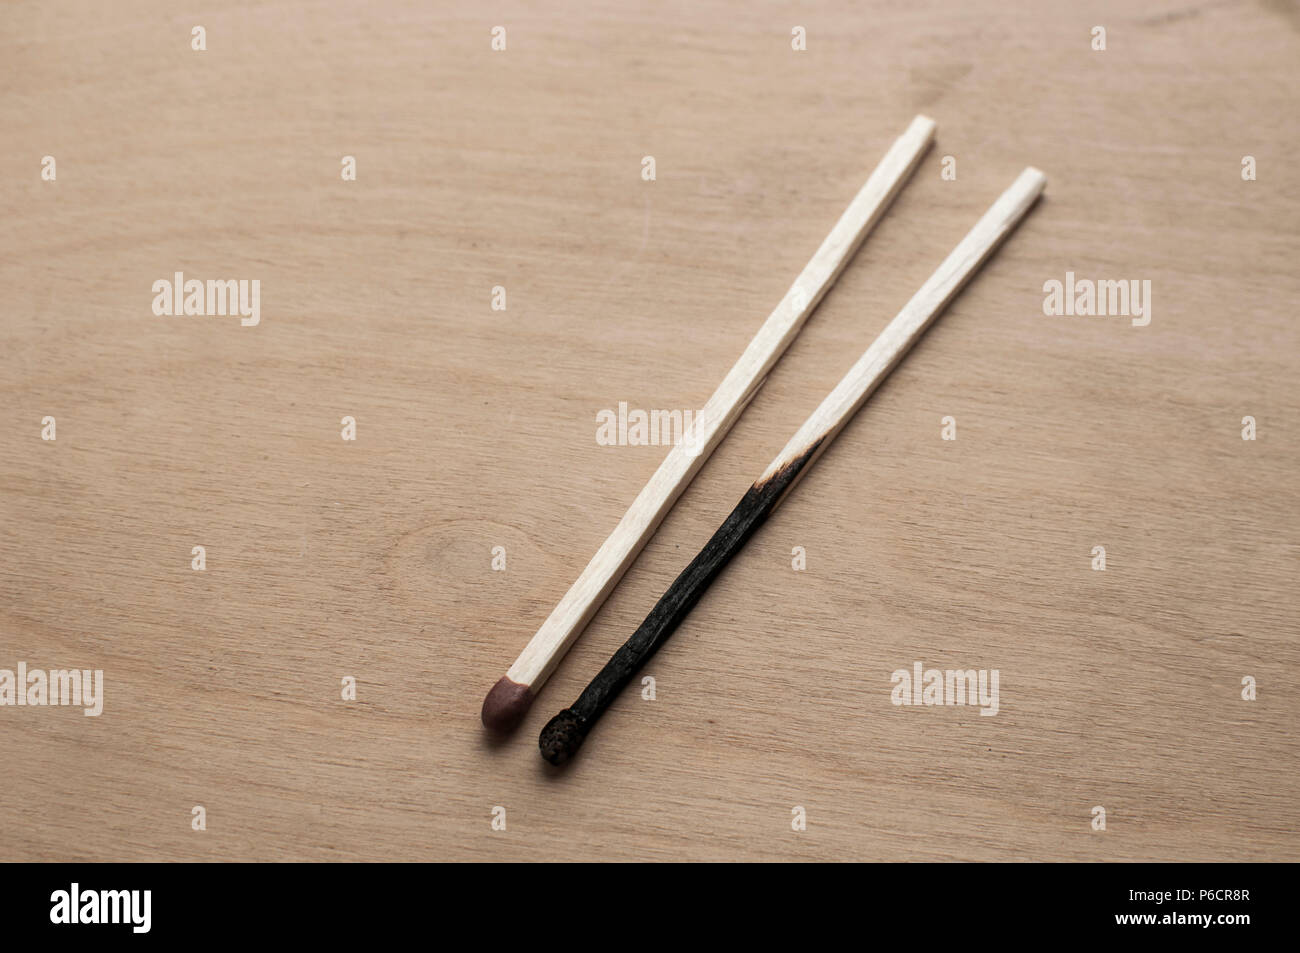 Burnt and whole head long wooden safety matchsticks on wooden background - Stock Image